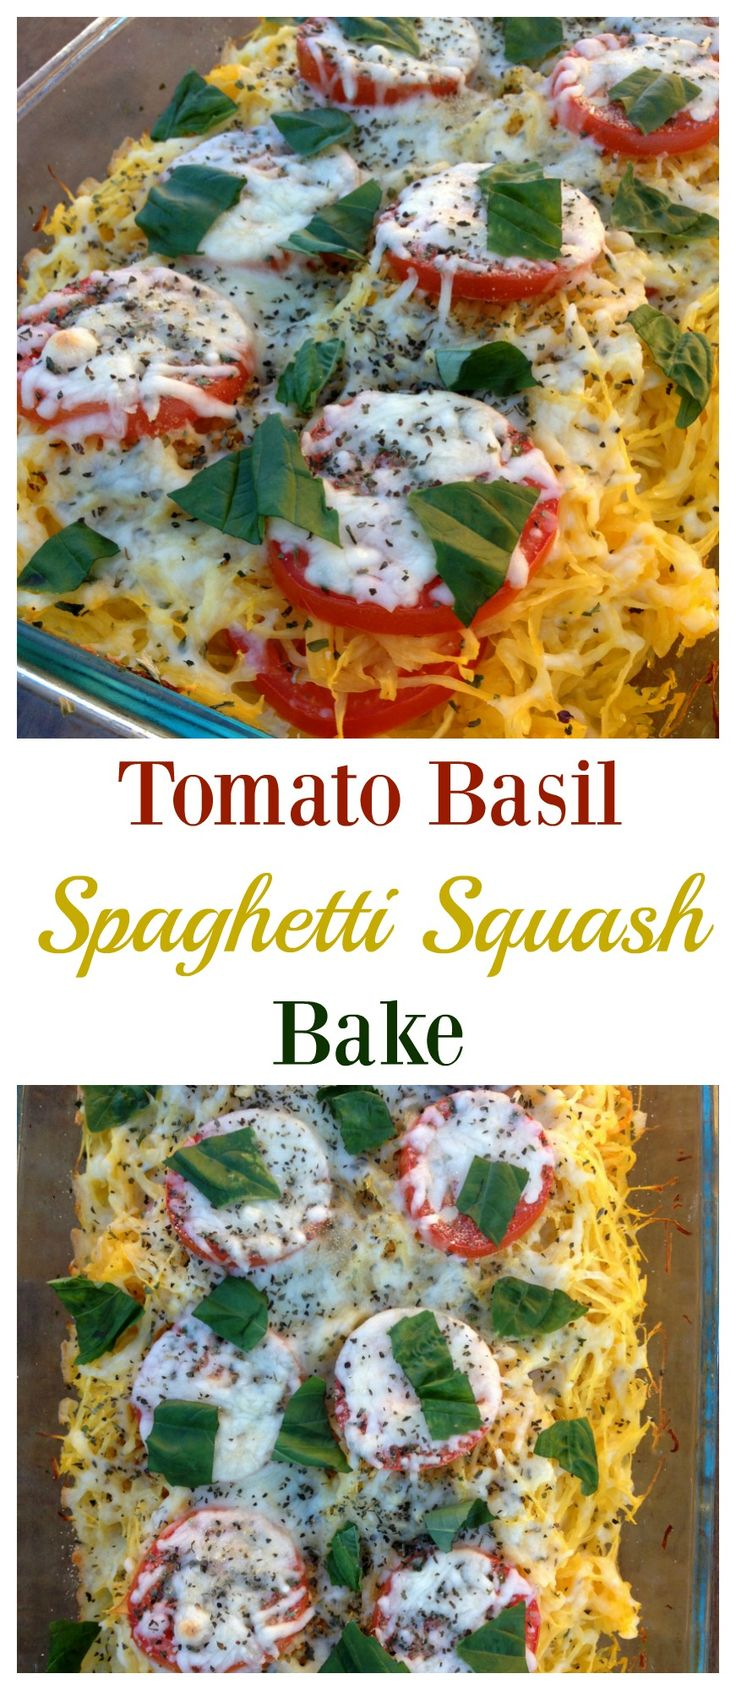 This Tomato Basil Spaghetti Squash Bake is one of our favorite meals! It's easy, healthy and delicious!